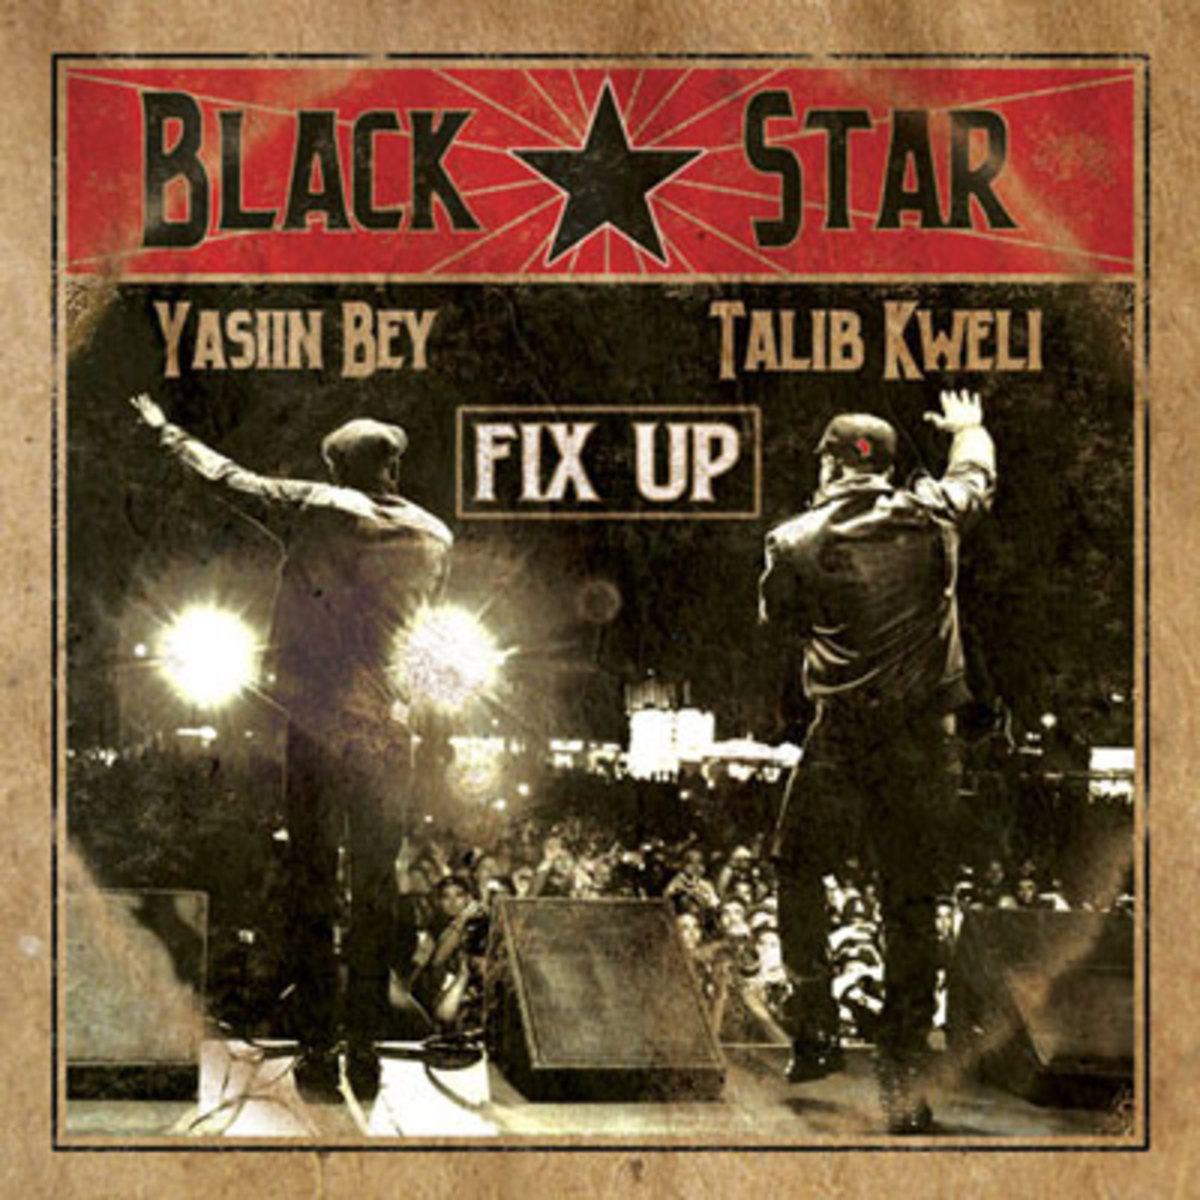 blackstar-fix-up.jpg